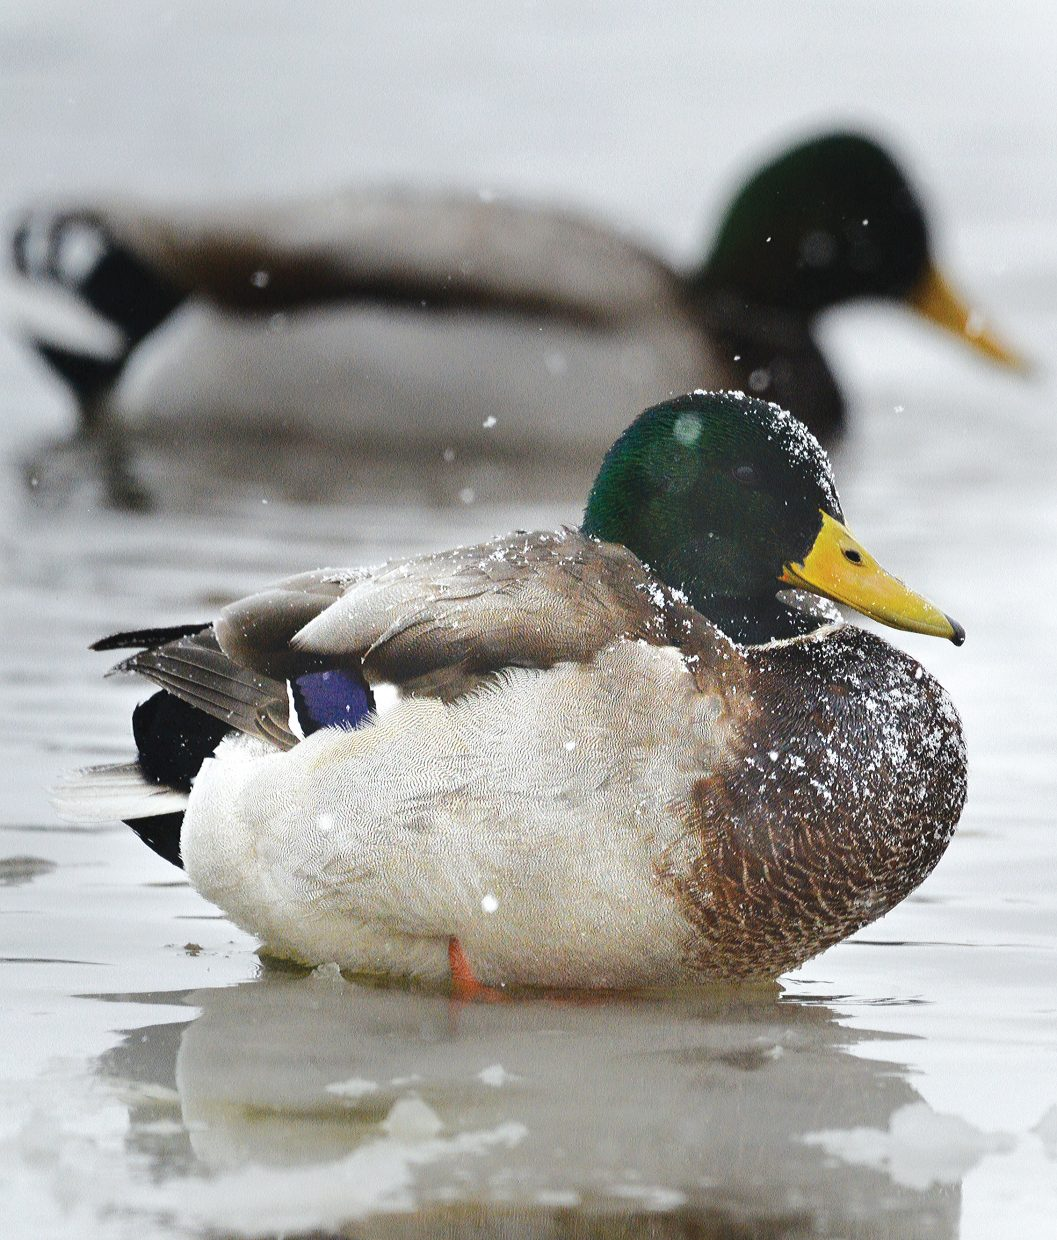 A duck does its best to stay warm Monday morning while sitting on the ice at the West Lincoln Park pond.